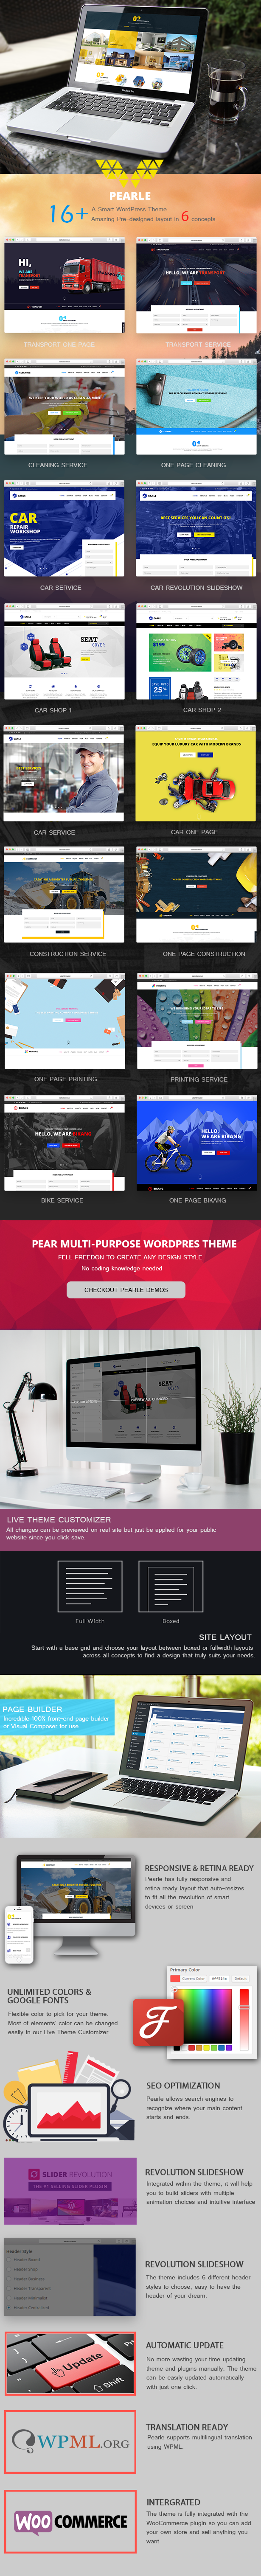 Pearle - Multipurpose WordPress Theme